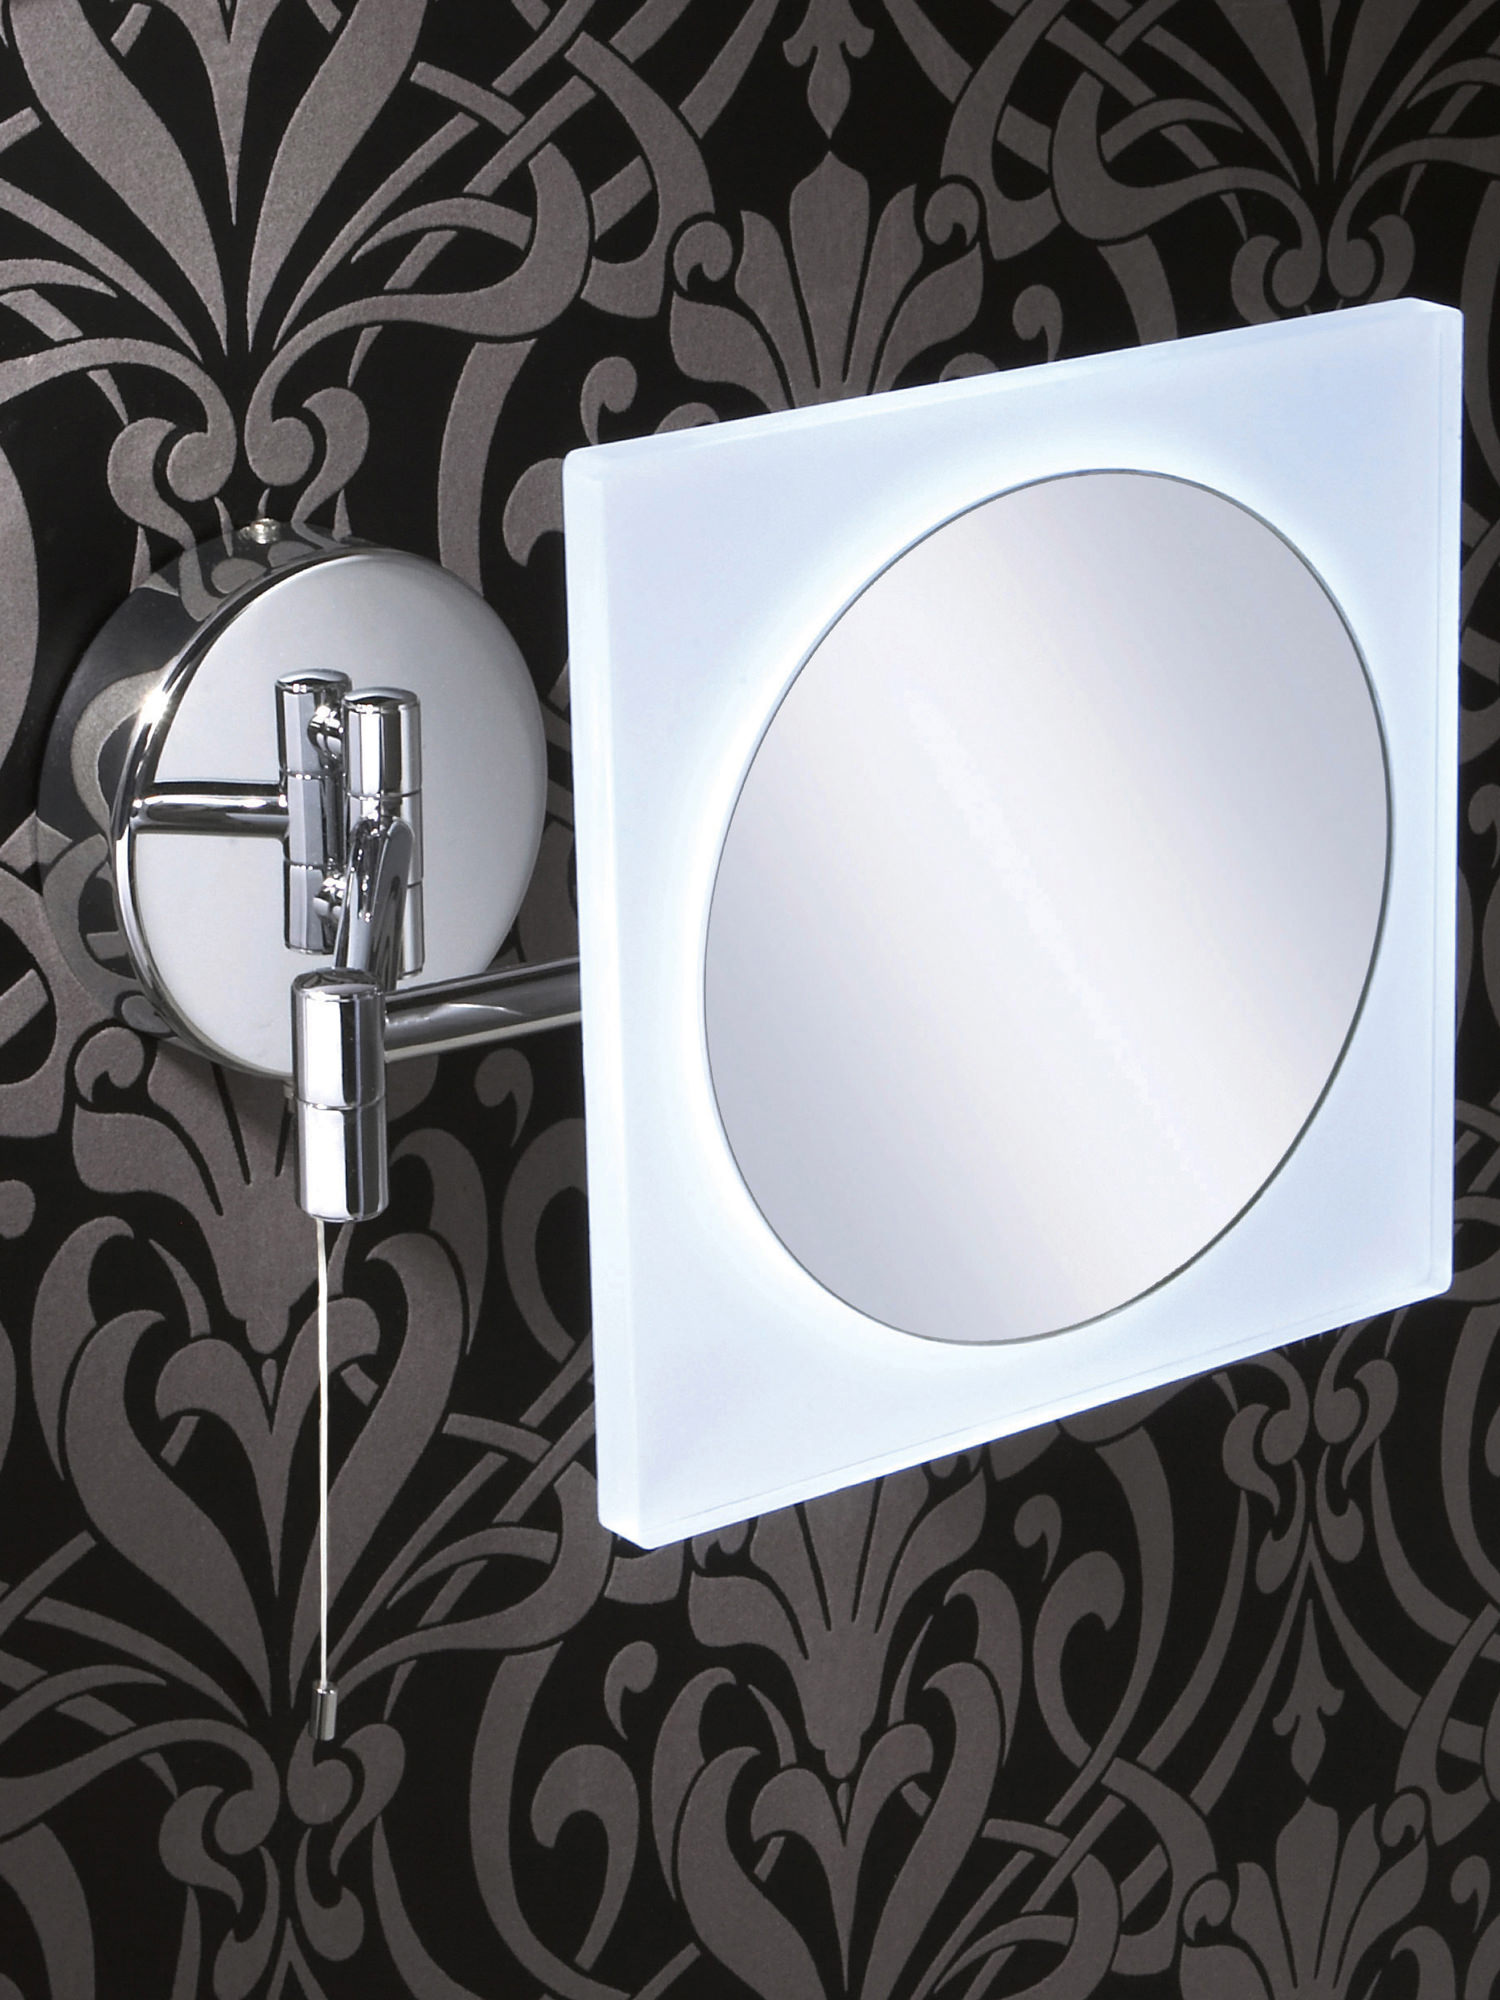 table bathroom mounted lights and lighted mirrors desk wants with wall led mount every that girl mirror light magnifying vanity movable best lighting zadro next makeup the generation